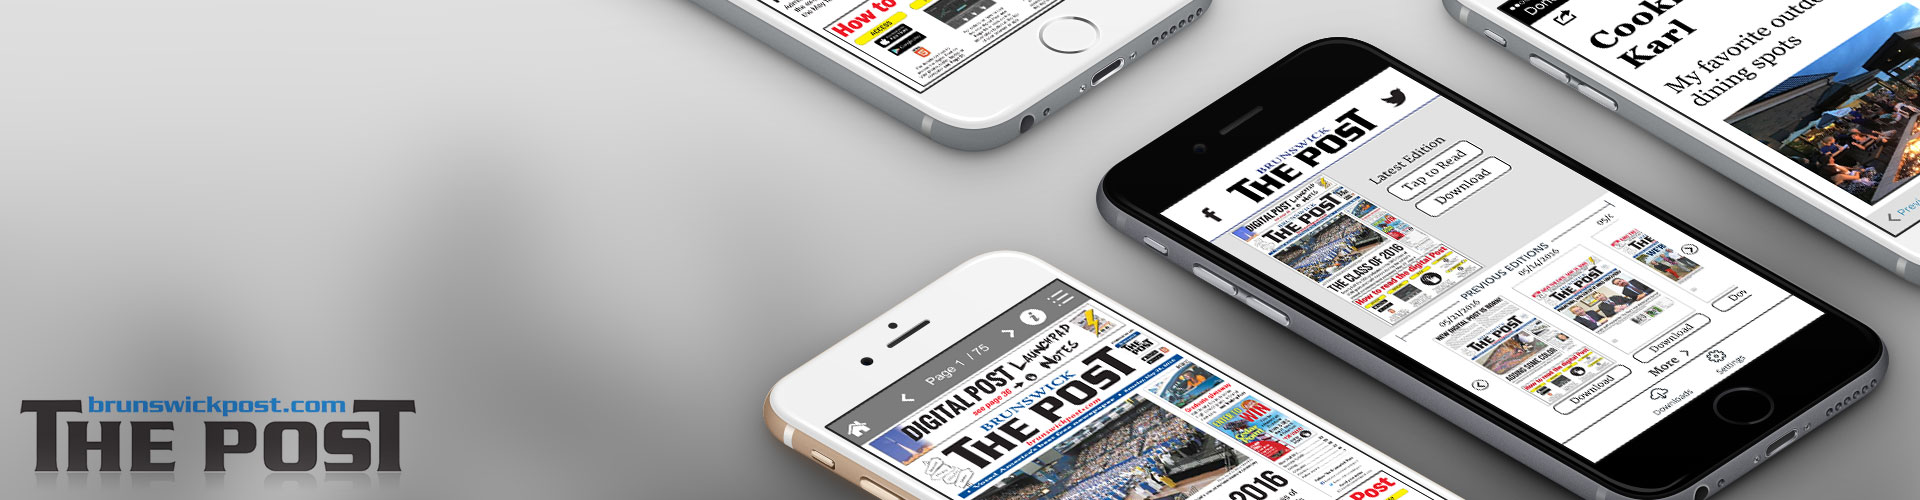 Header image of PageSuite Collaborate with The Post Newspapers on Revolutionary 'Mobile First' Strategy